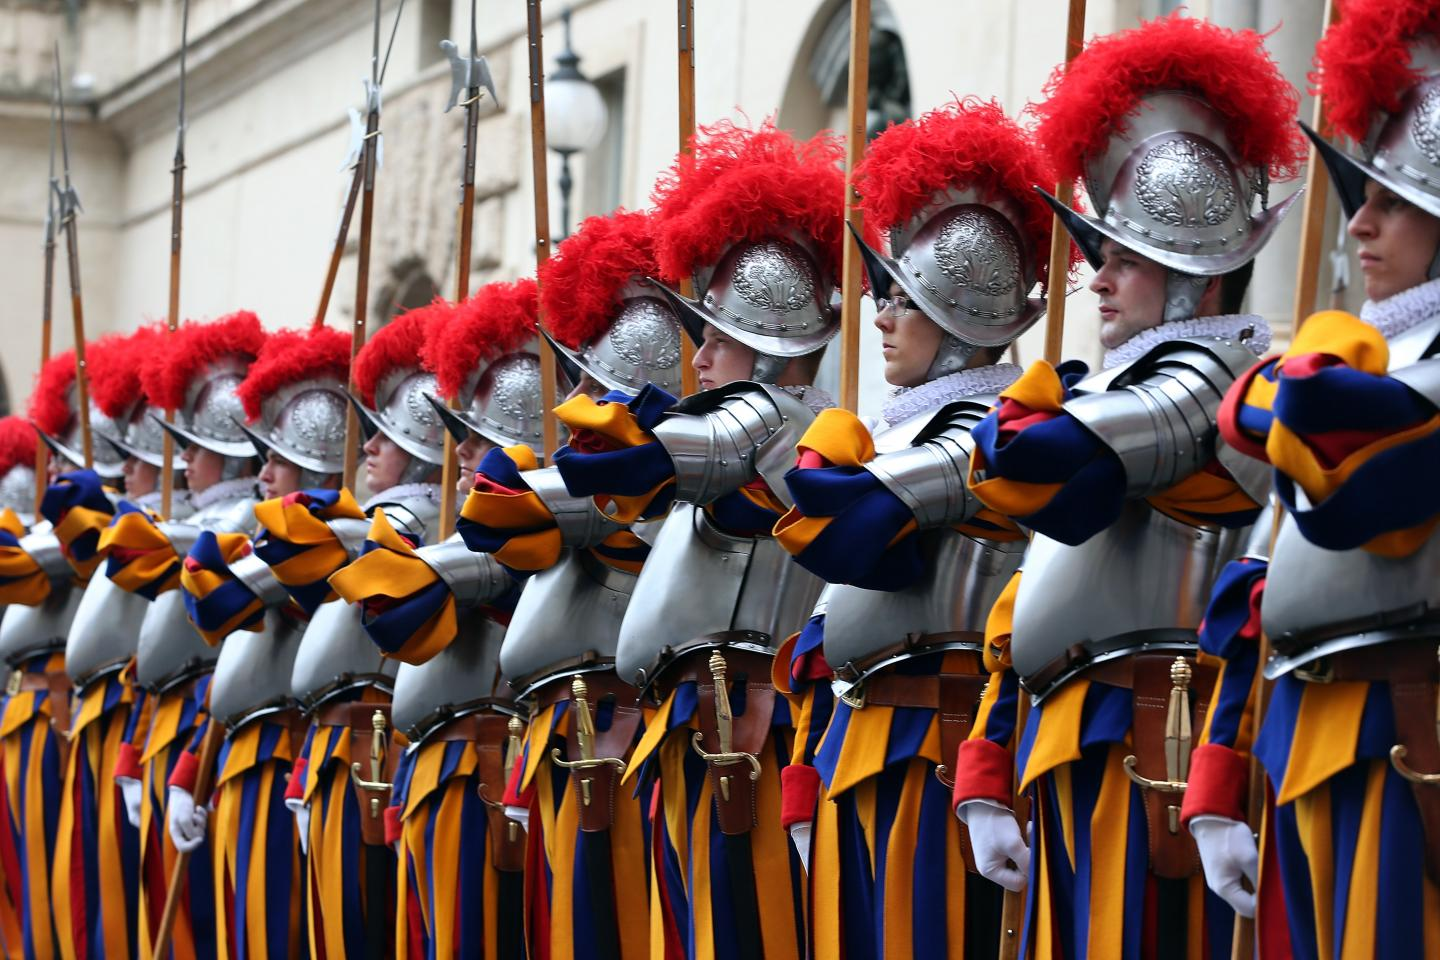 Vatican's Swiss Guard